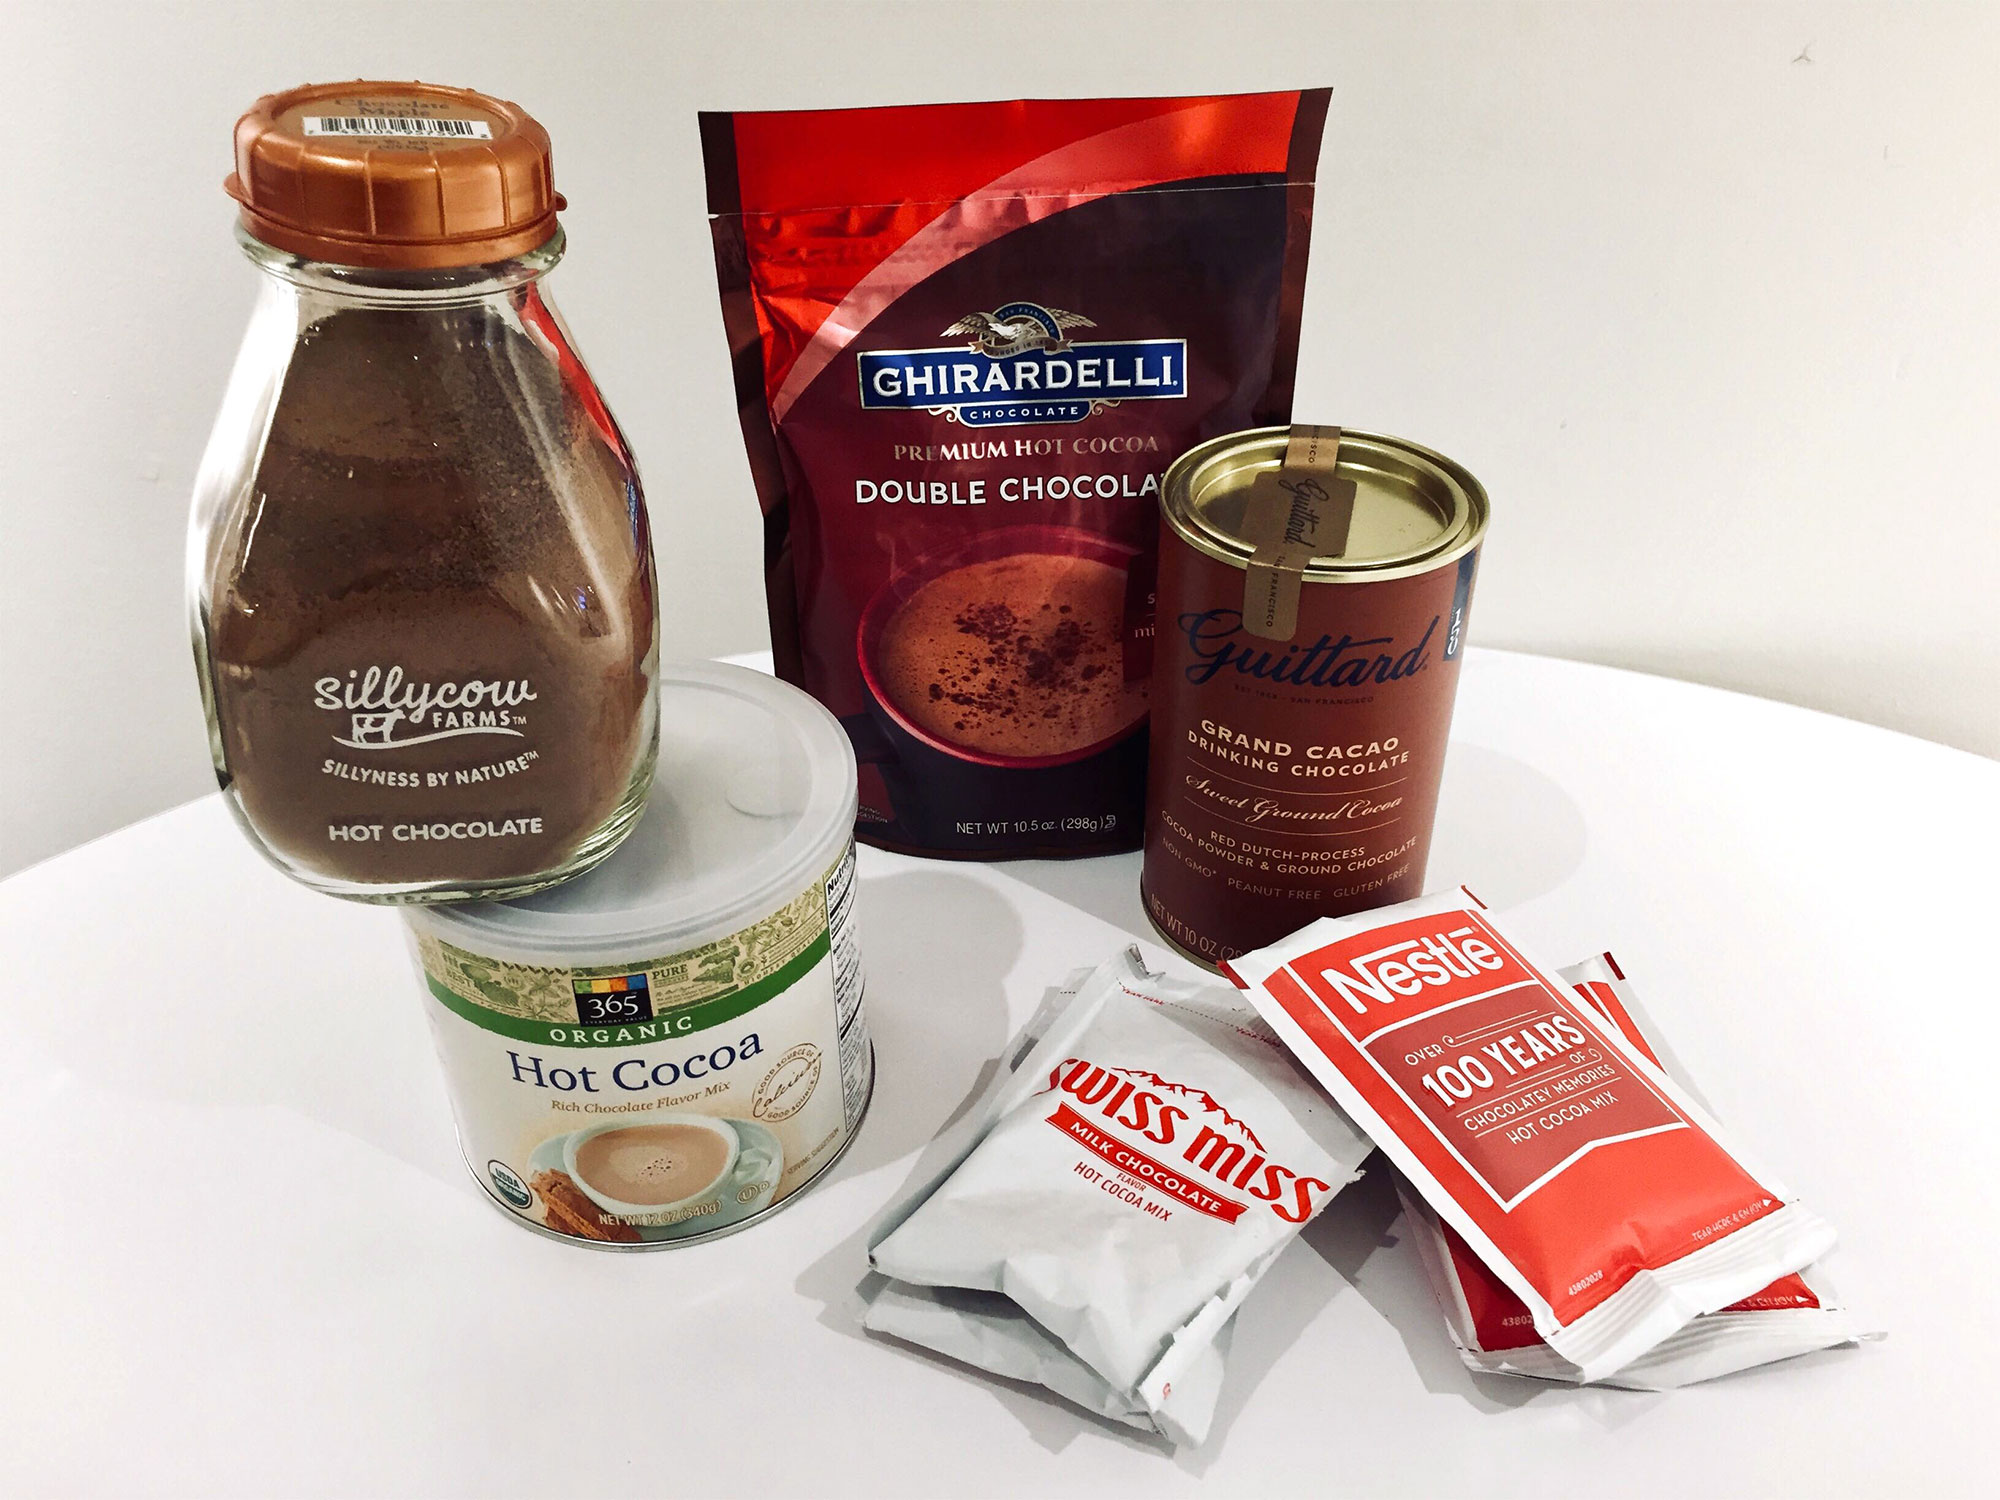 I Tried 6 Grocery Store Hot Chocolate Mixes, and This Is the Best One